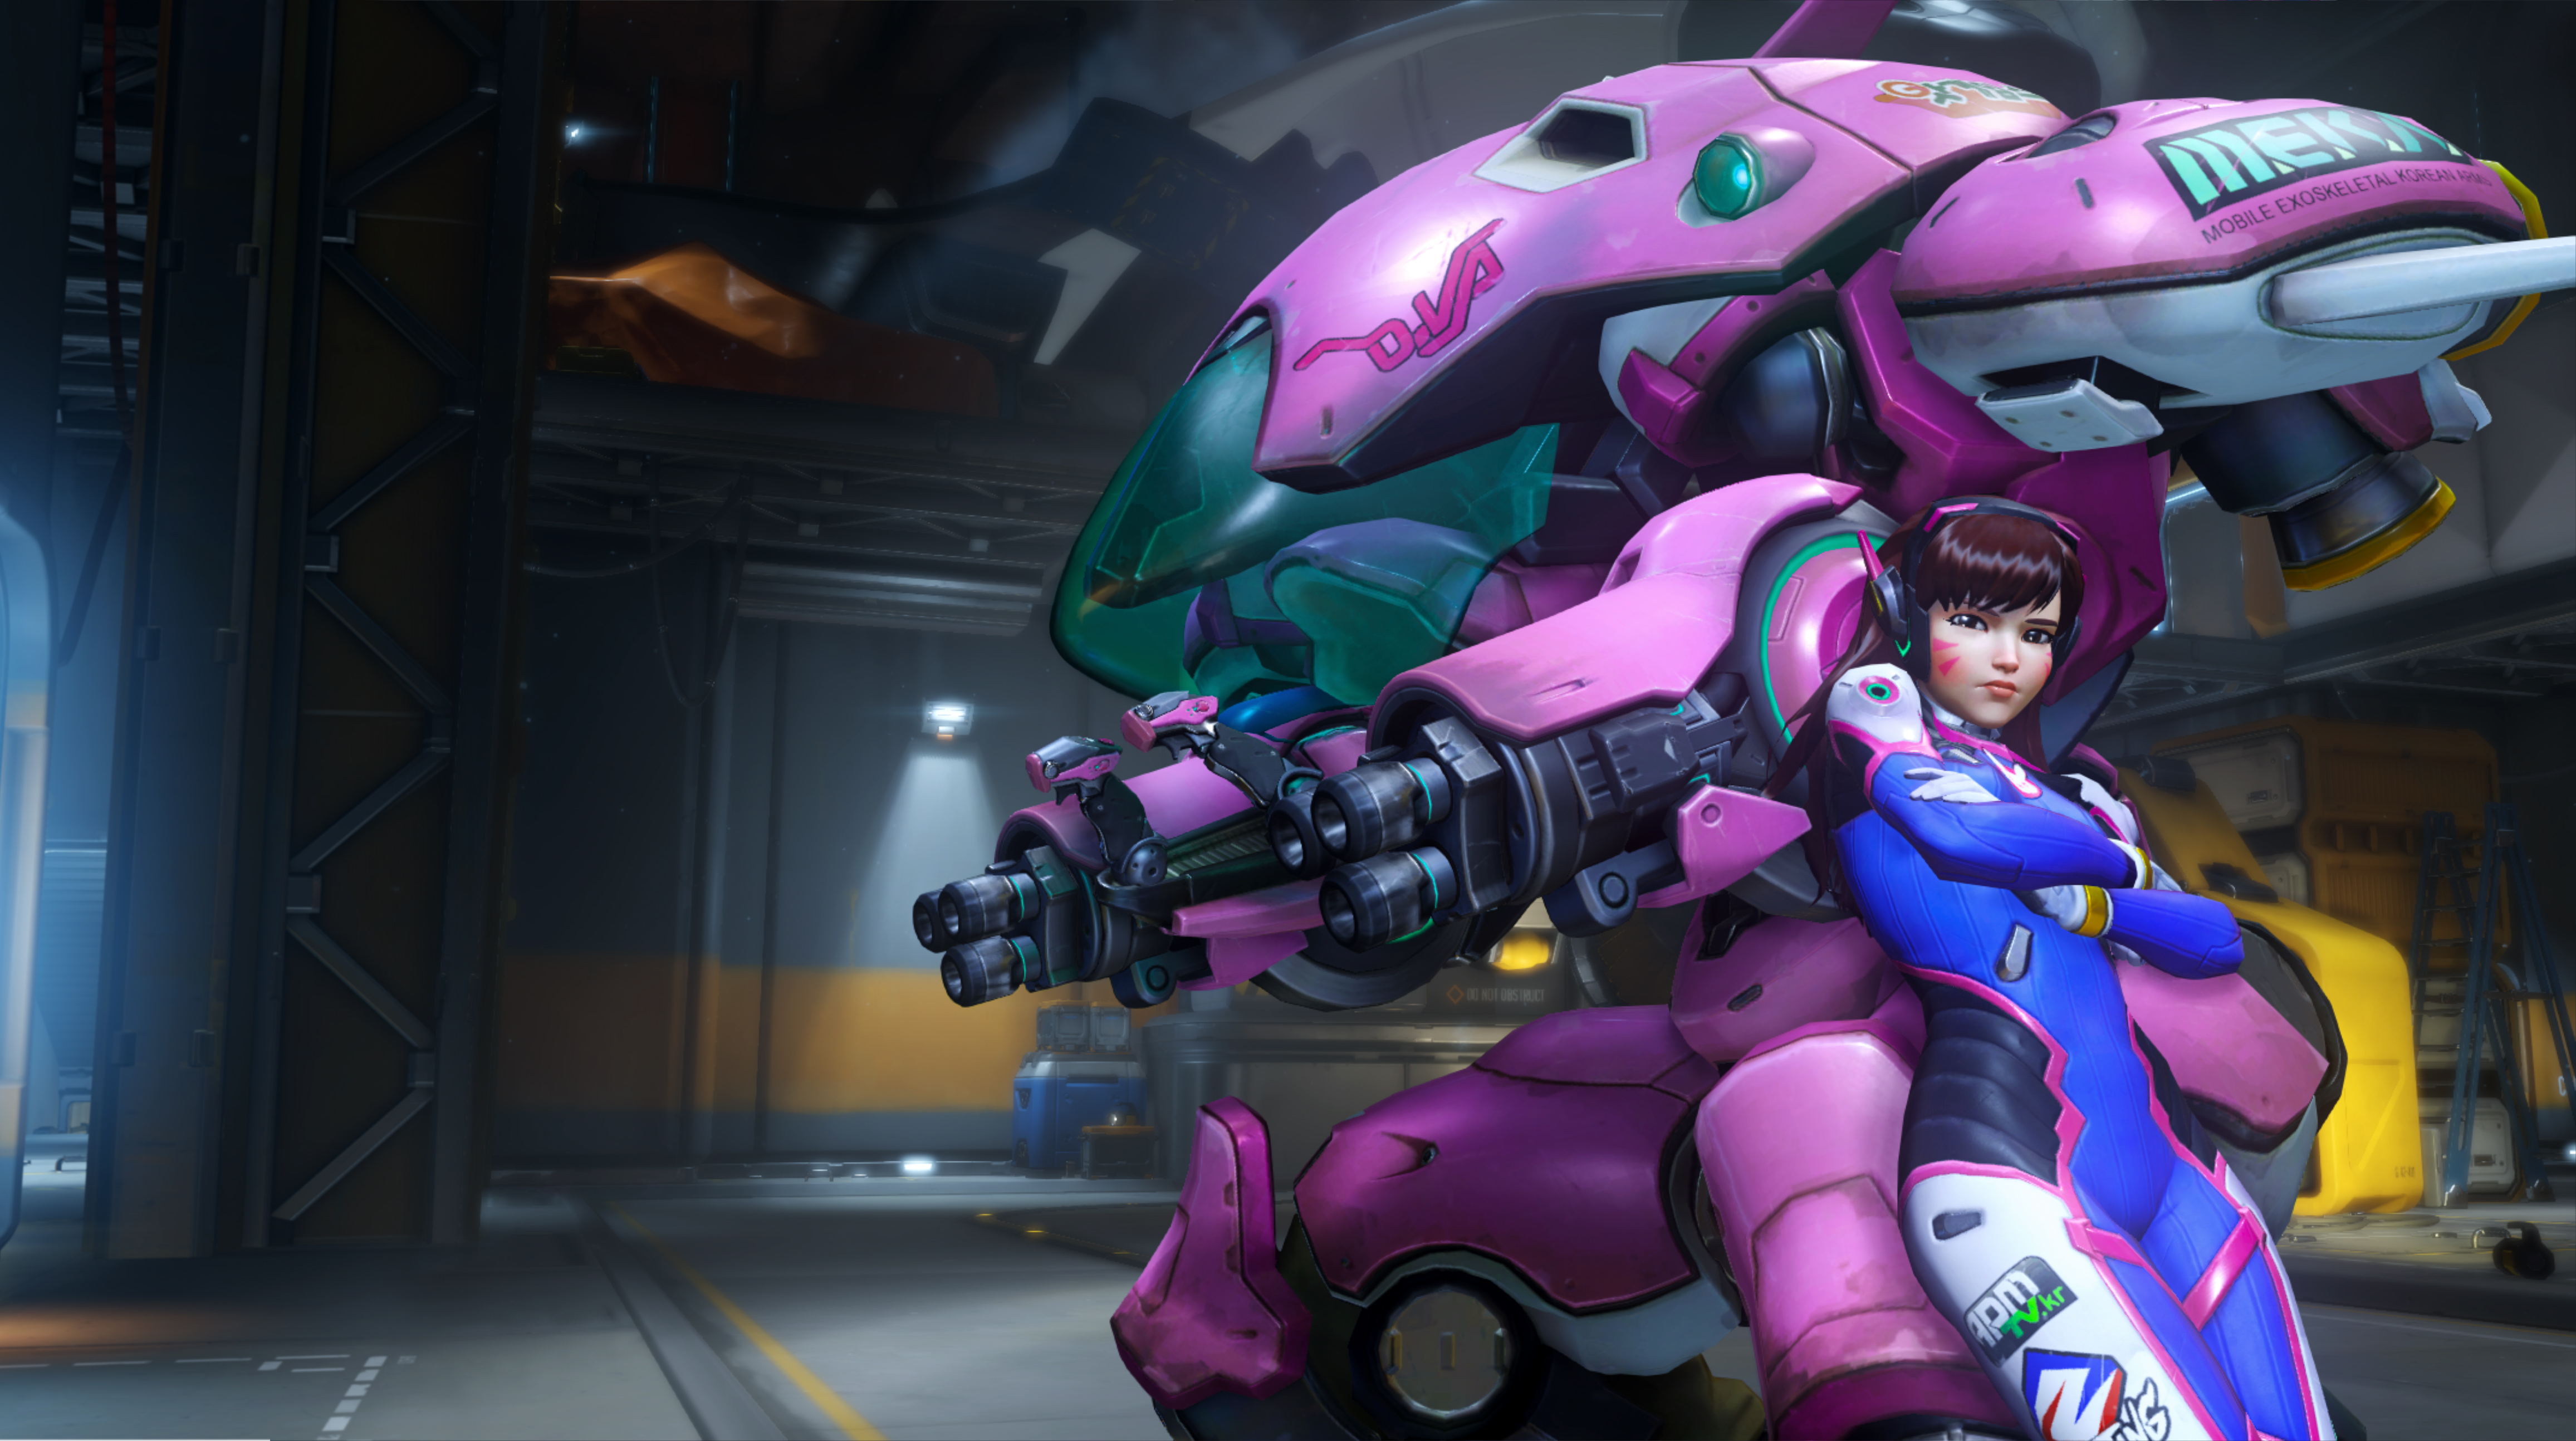 D.Va in Overwatch: She's a mech. And she's pink. And she'll kill you.